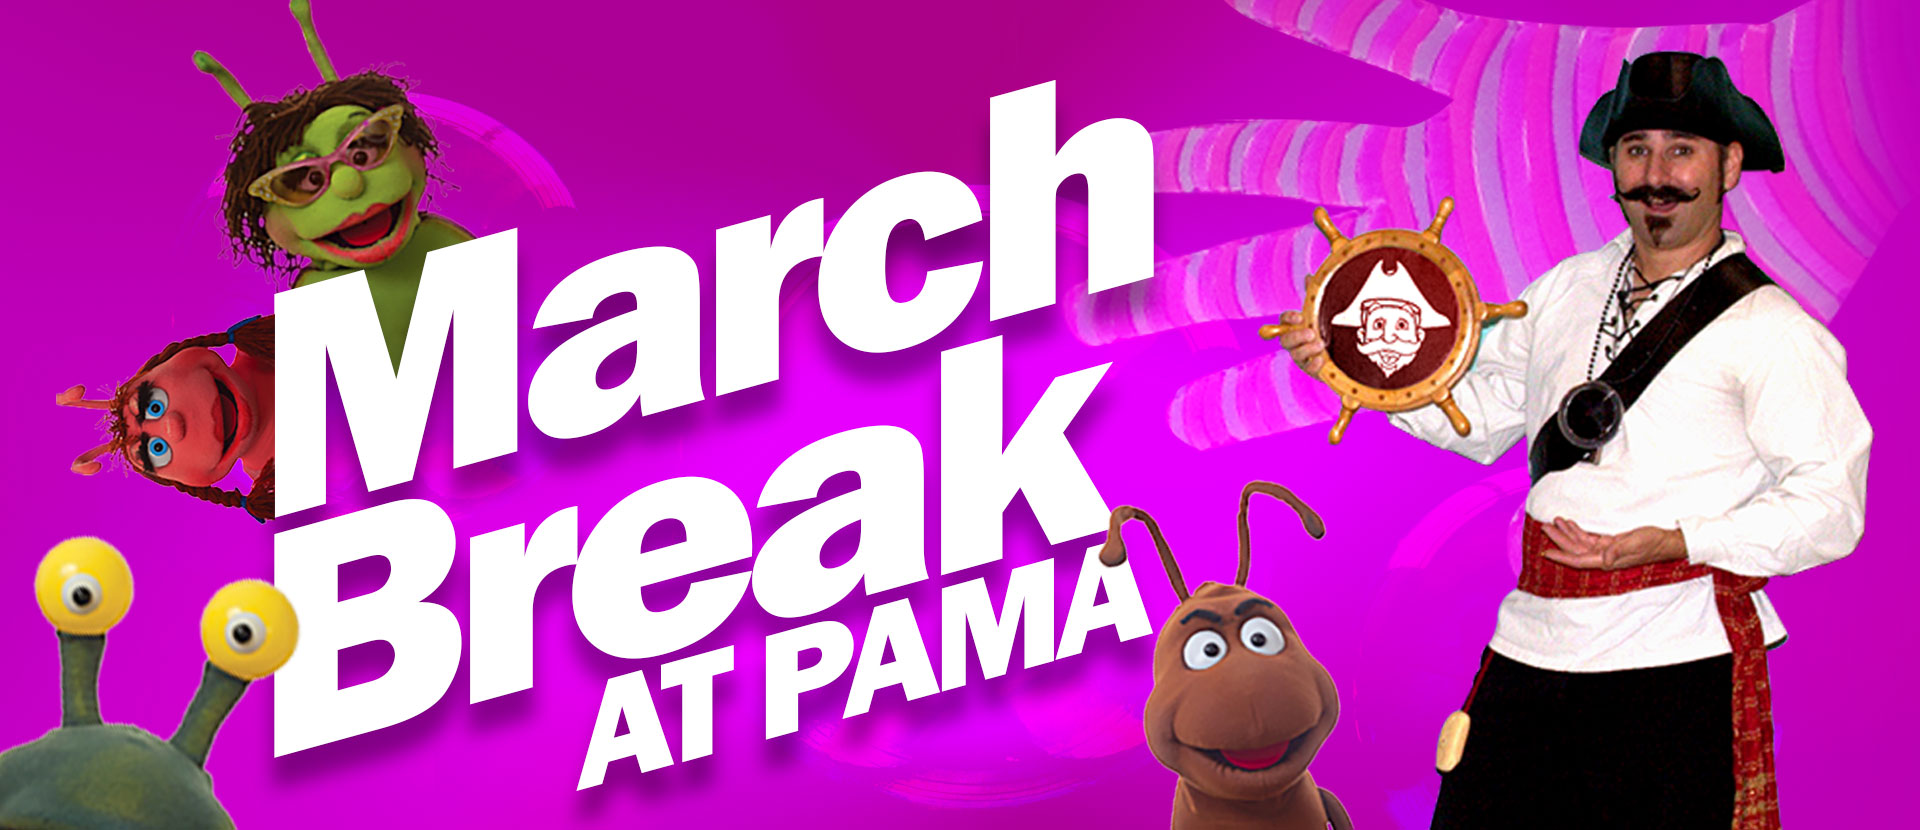 STEAM into March Break  at PAMA (March 16-20)